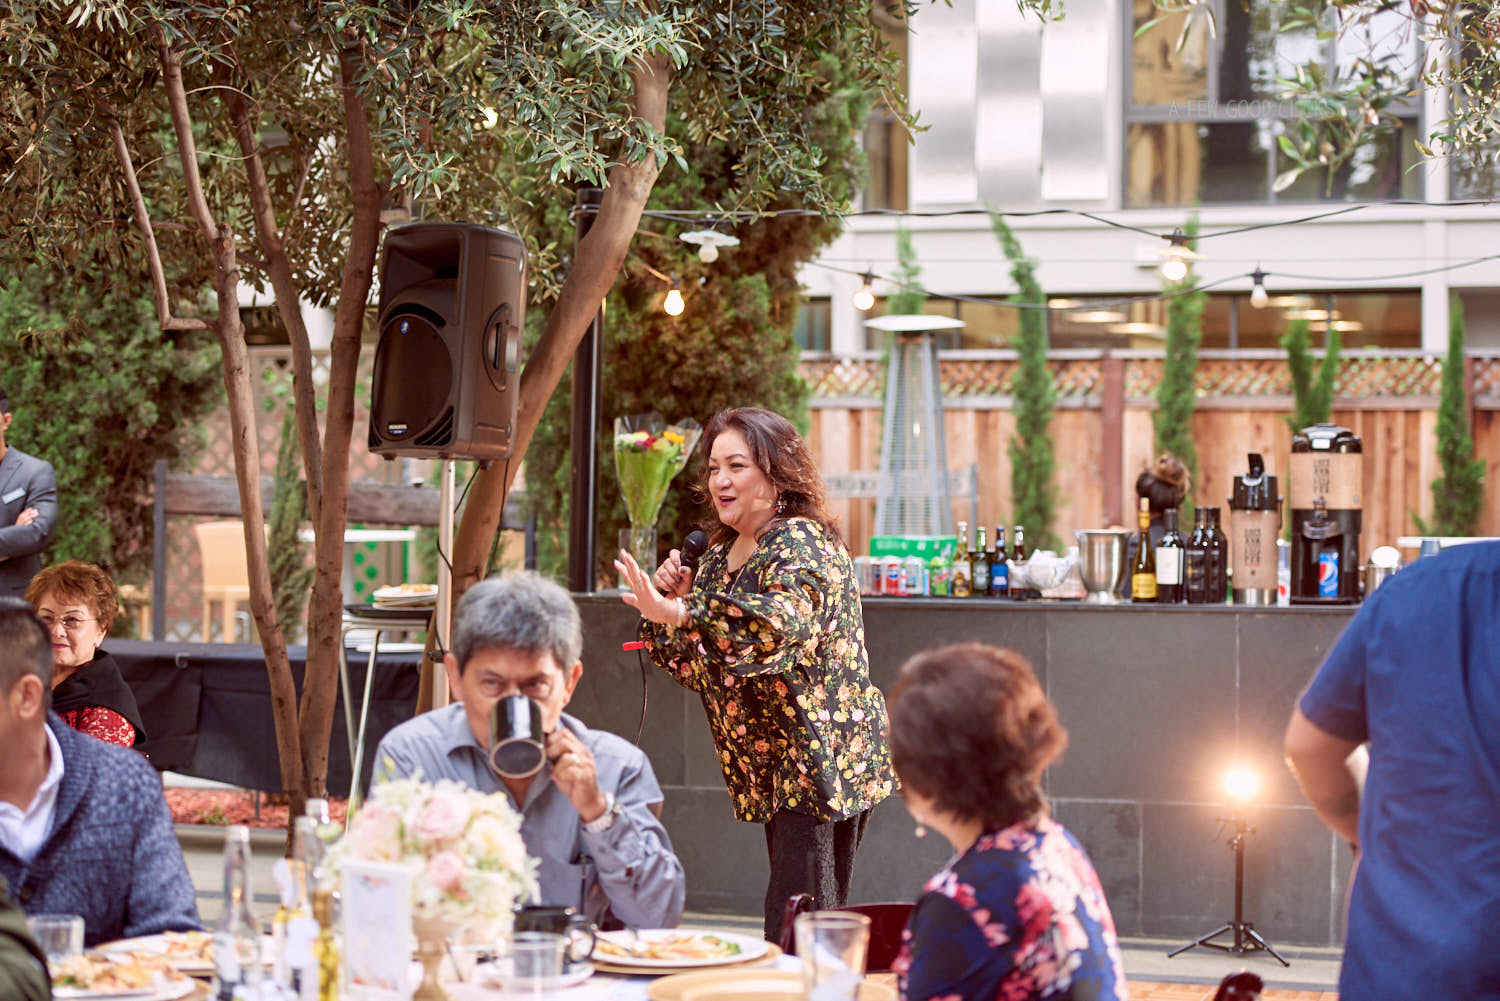 singing-at-60th-birthday-party-photography-by-a-few-good-clicks